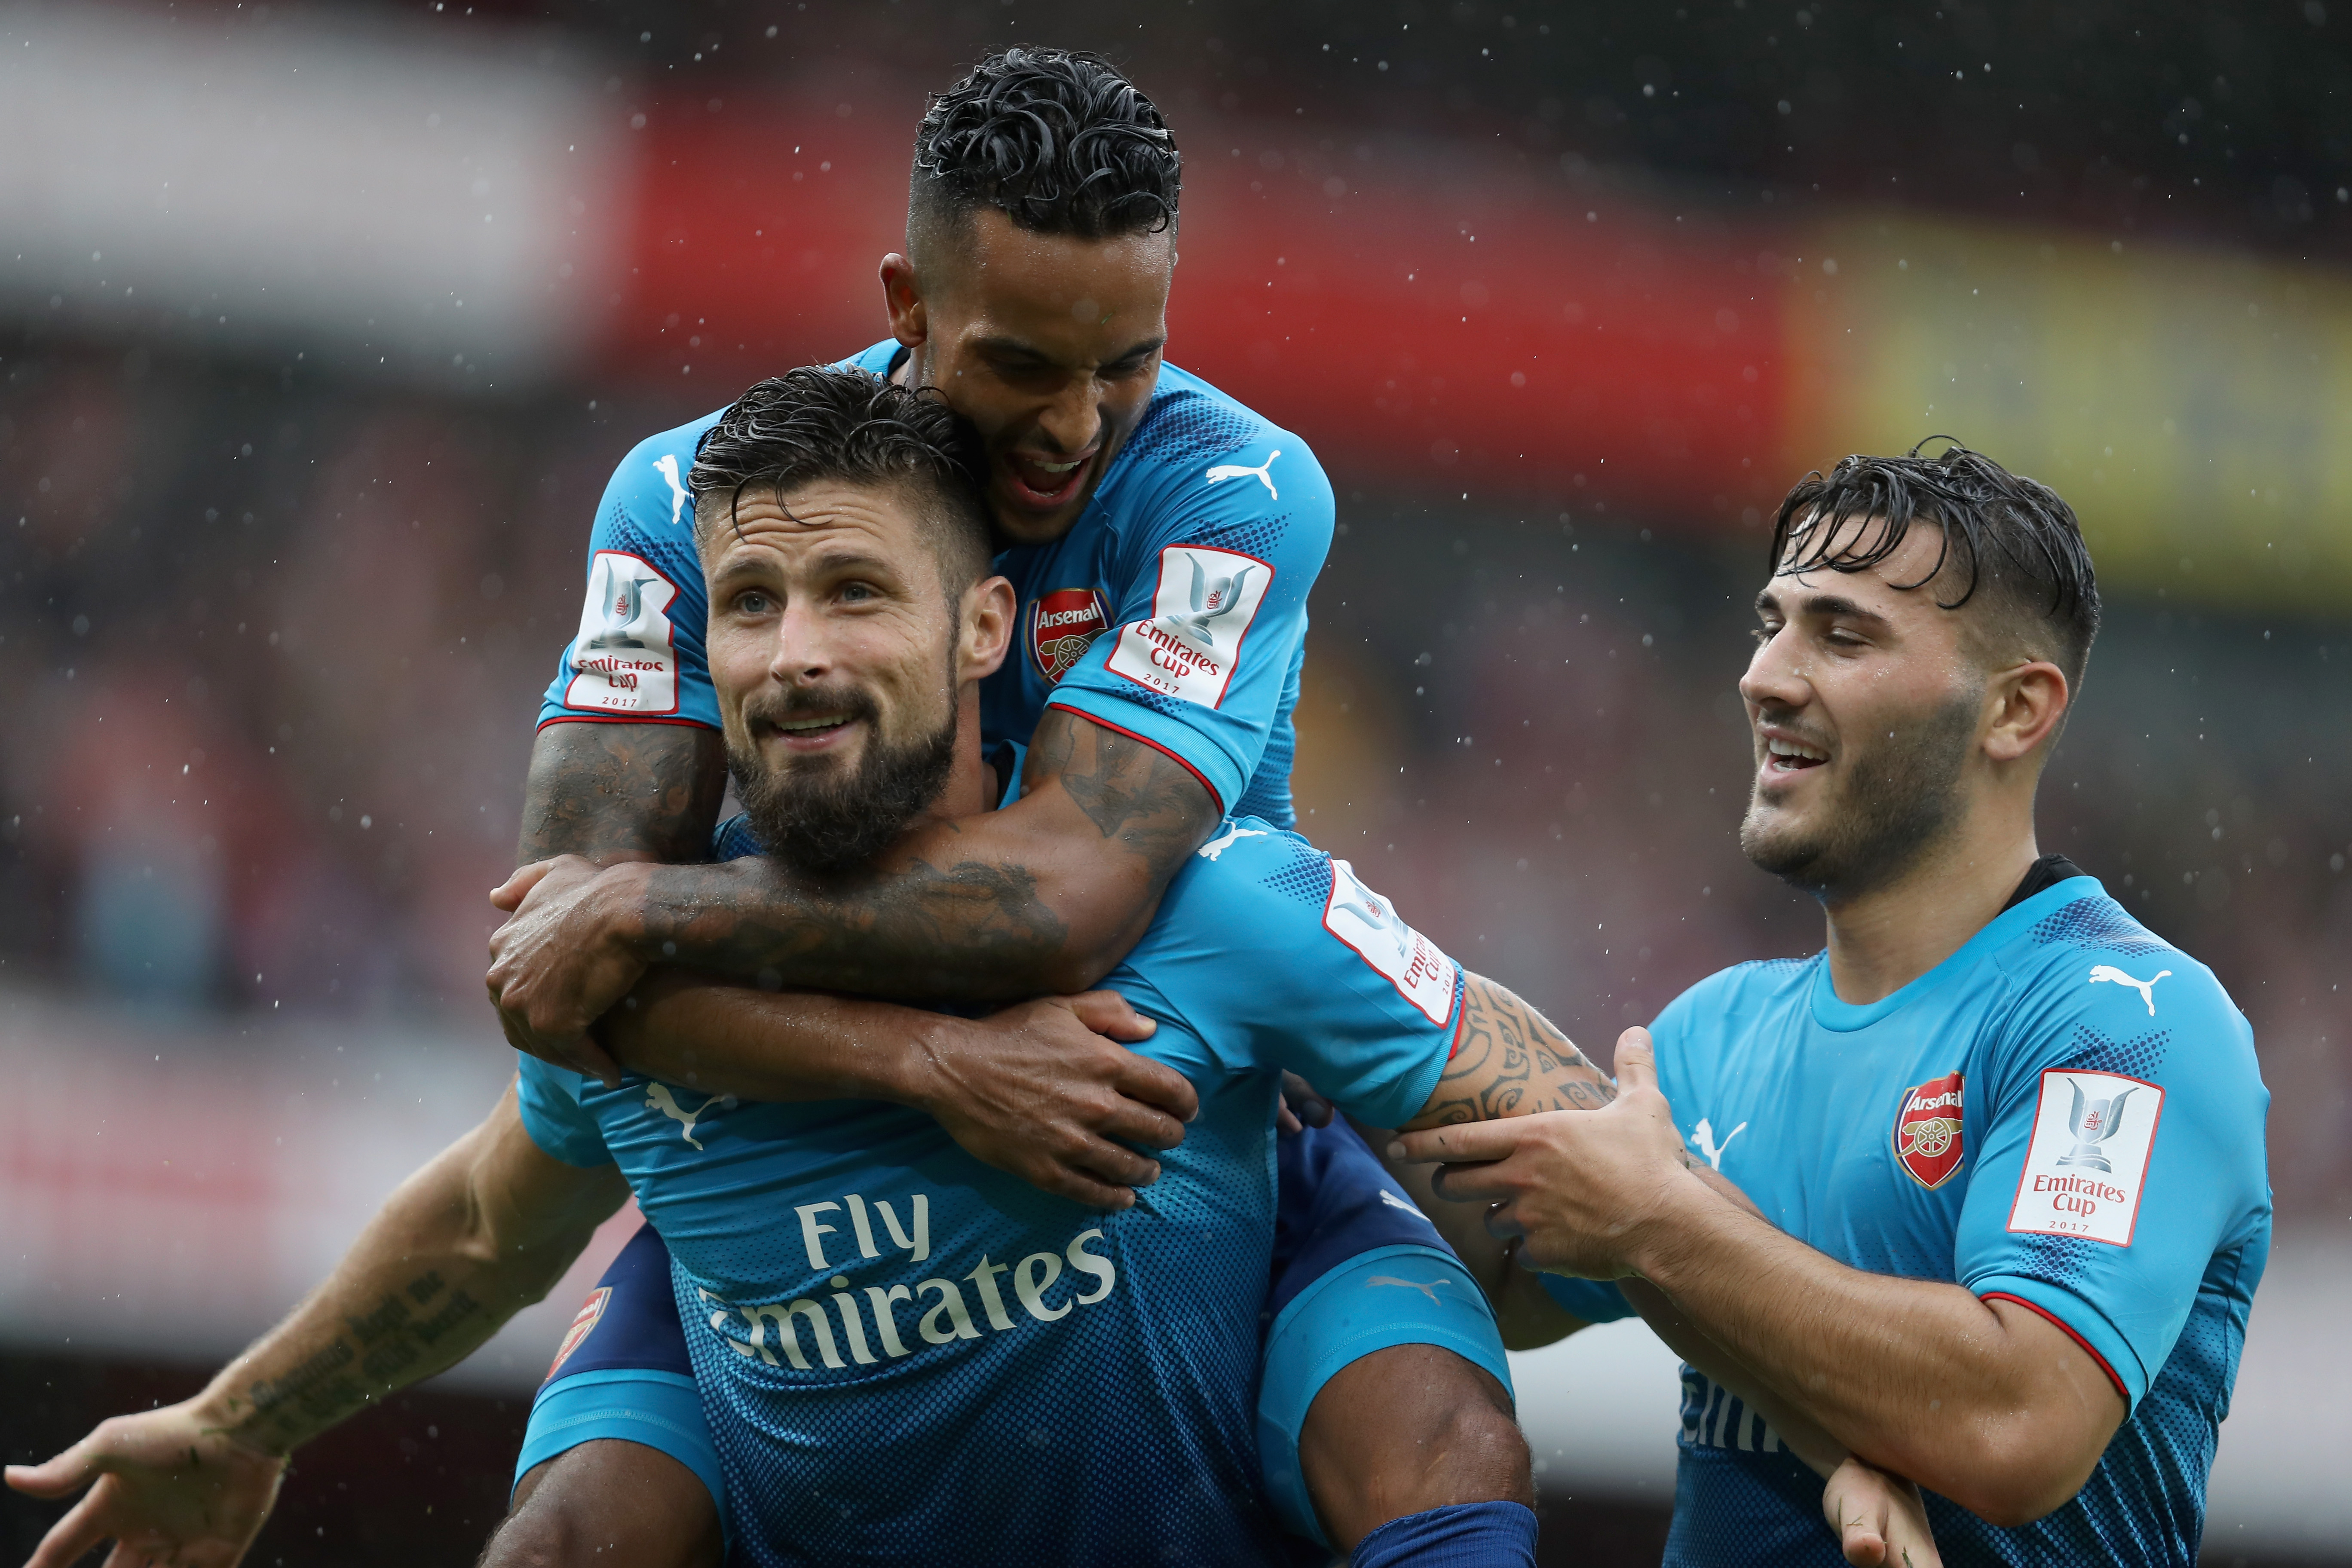 Arsenal v SL Benfica - Emirates Cup